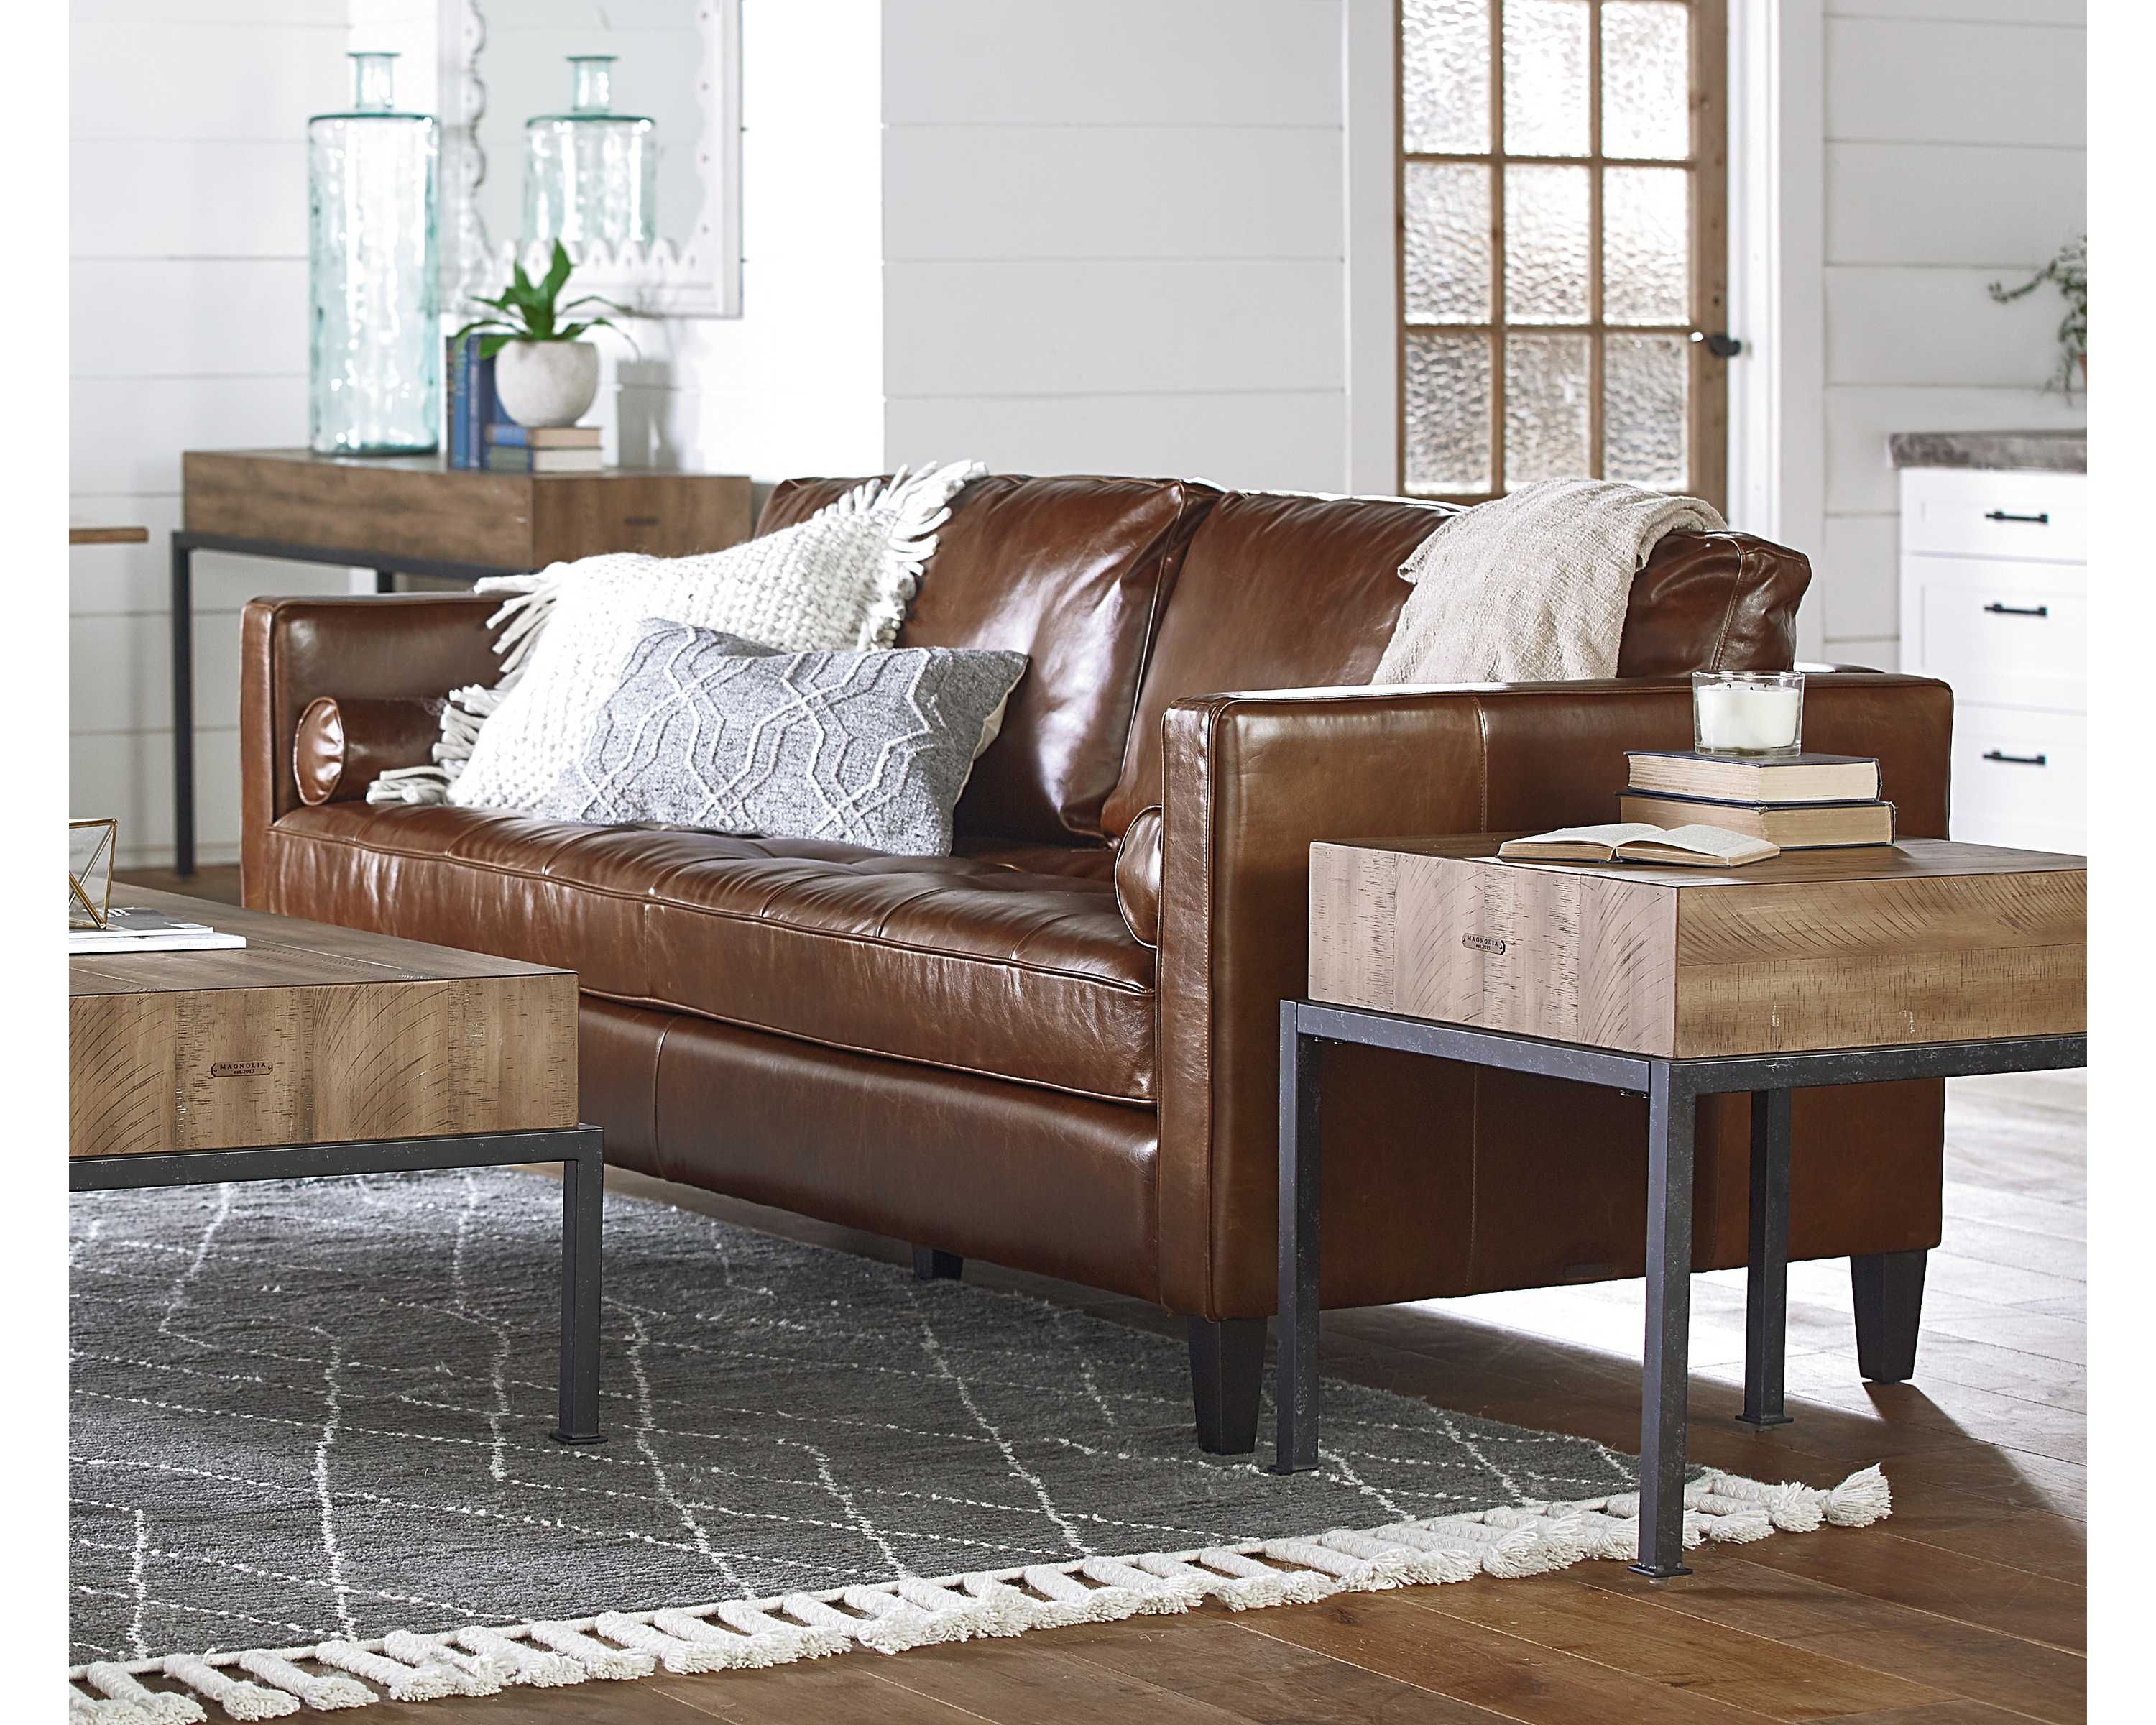 Dapper Sofa – Magnolia Home Inside Magnolia Home Dapper Fog Sofa Chairs (View 7 of 20)